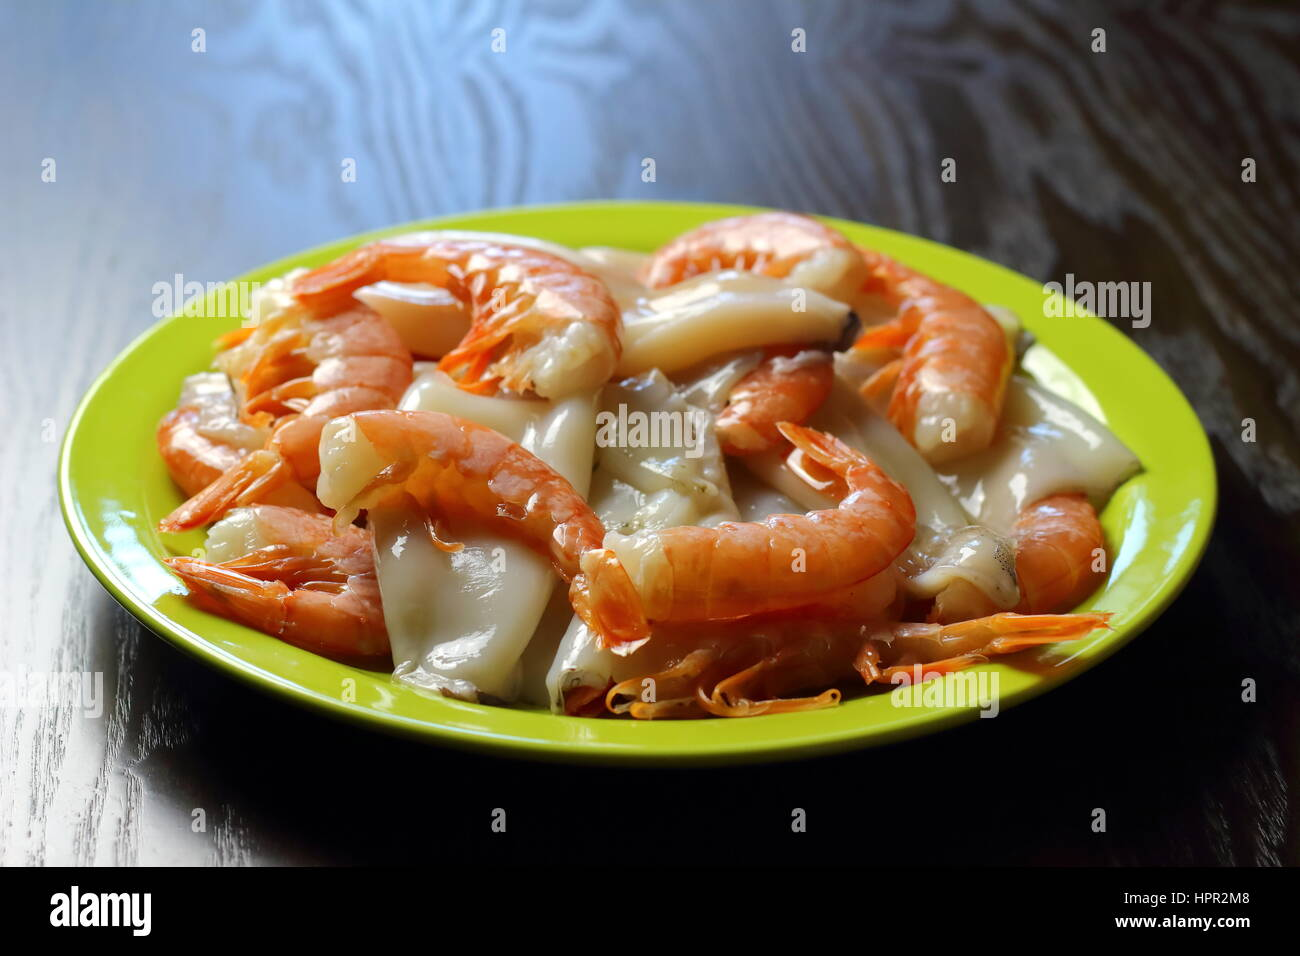 Raw (uncooked) shrimps (prawns) and squid in green dish lying on dark wooden table - Seafood recipe ingredients - Stock Image